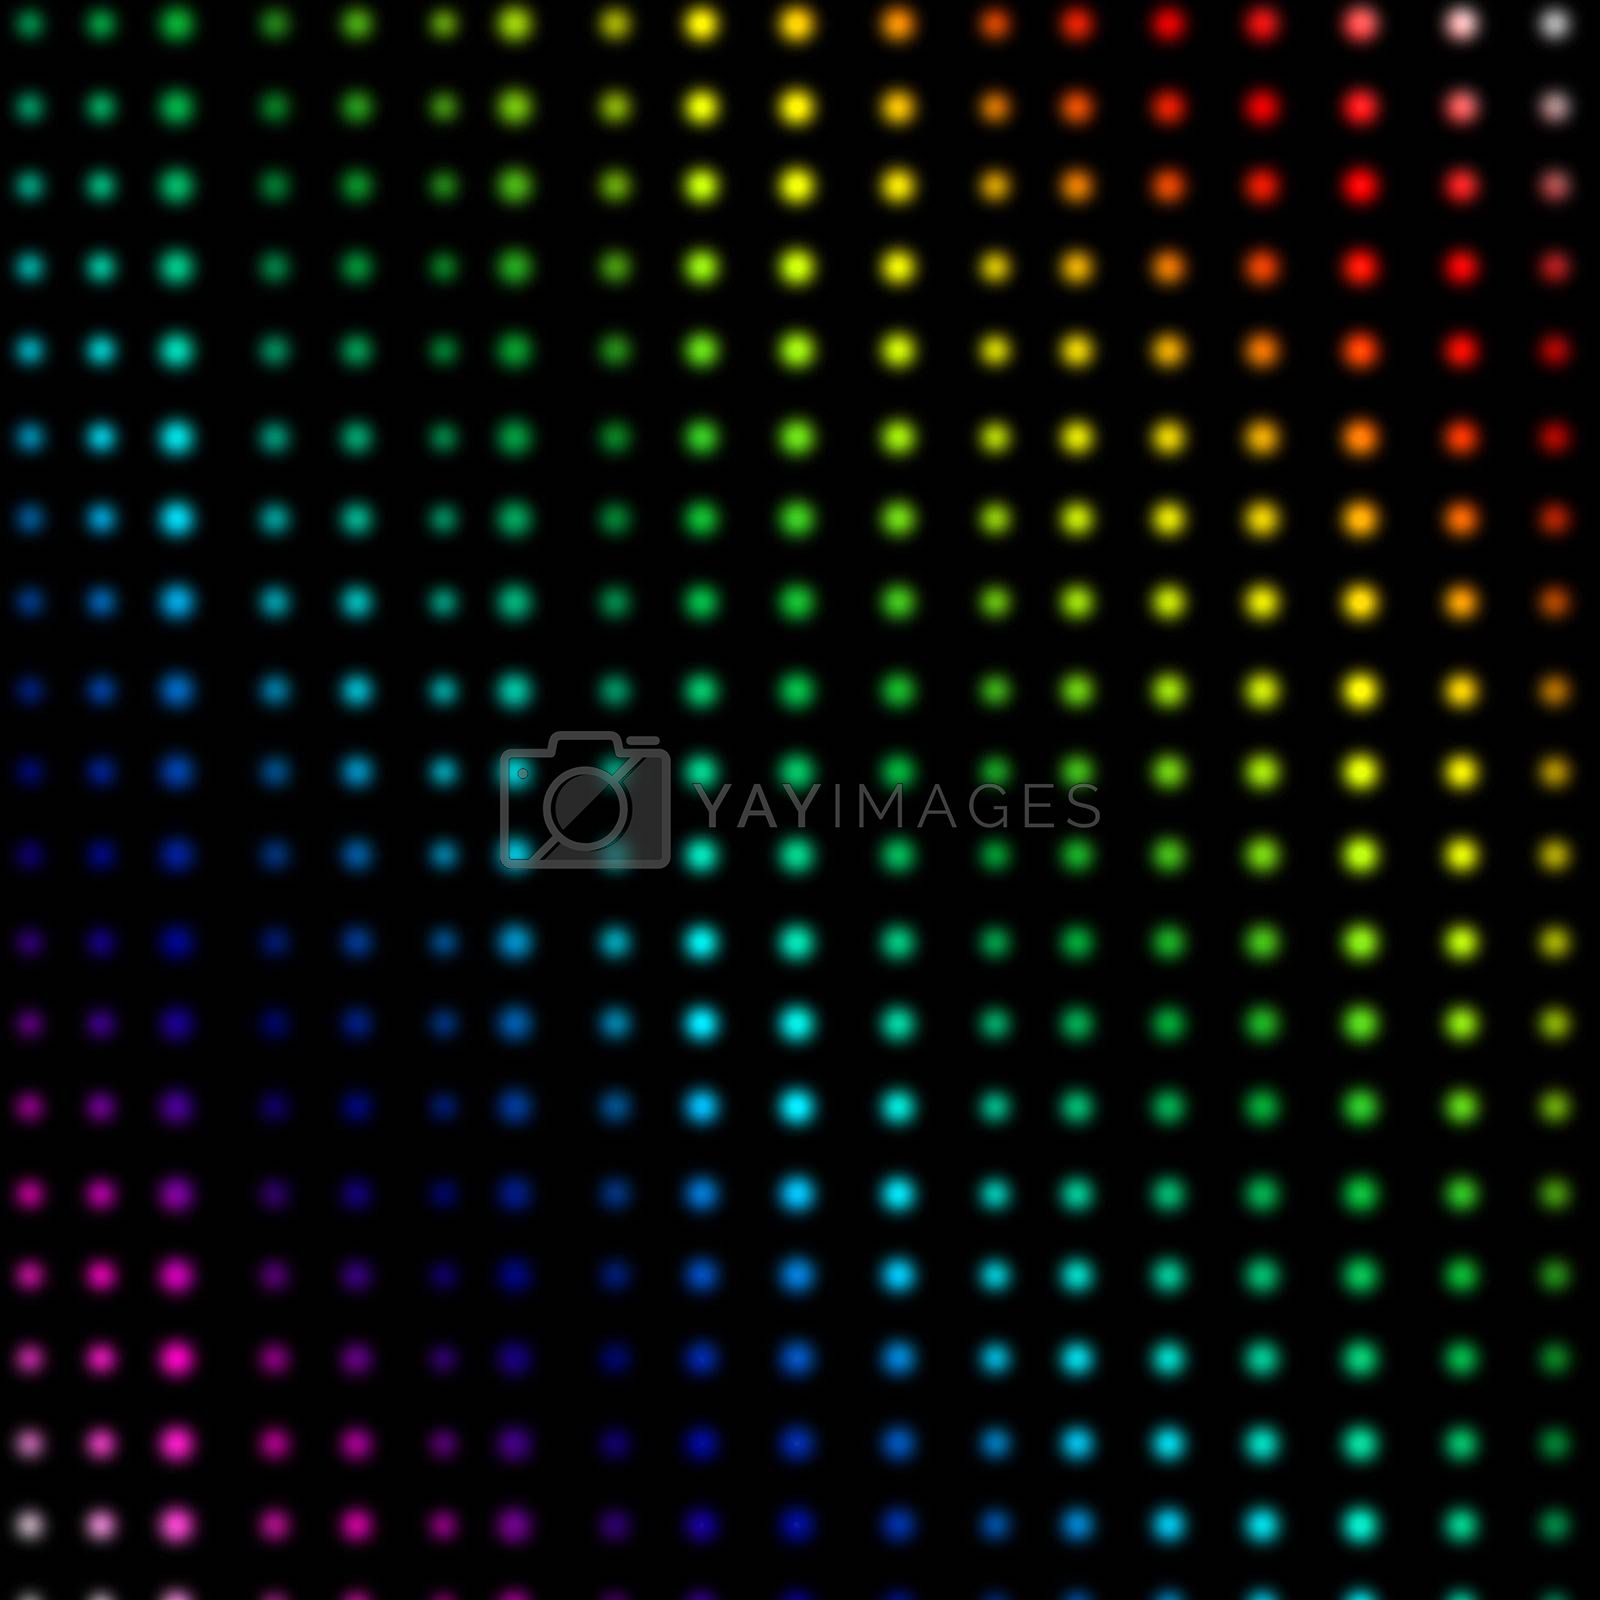 Multicolored dots forming lines against a black background